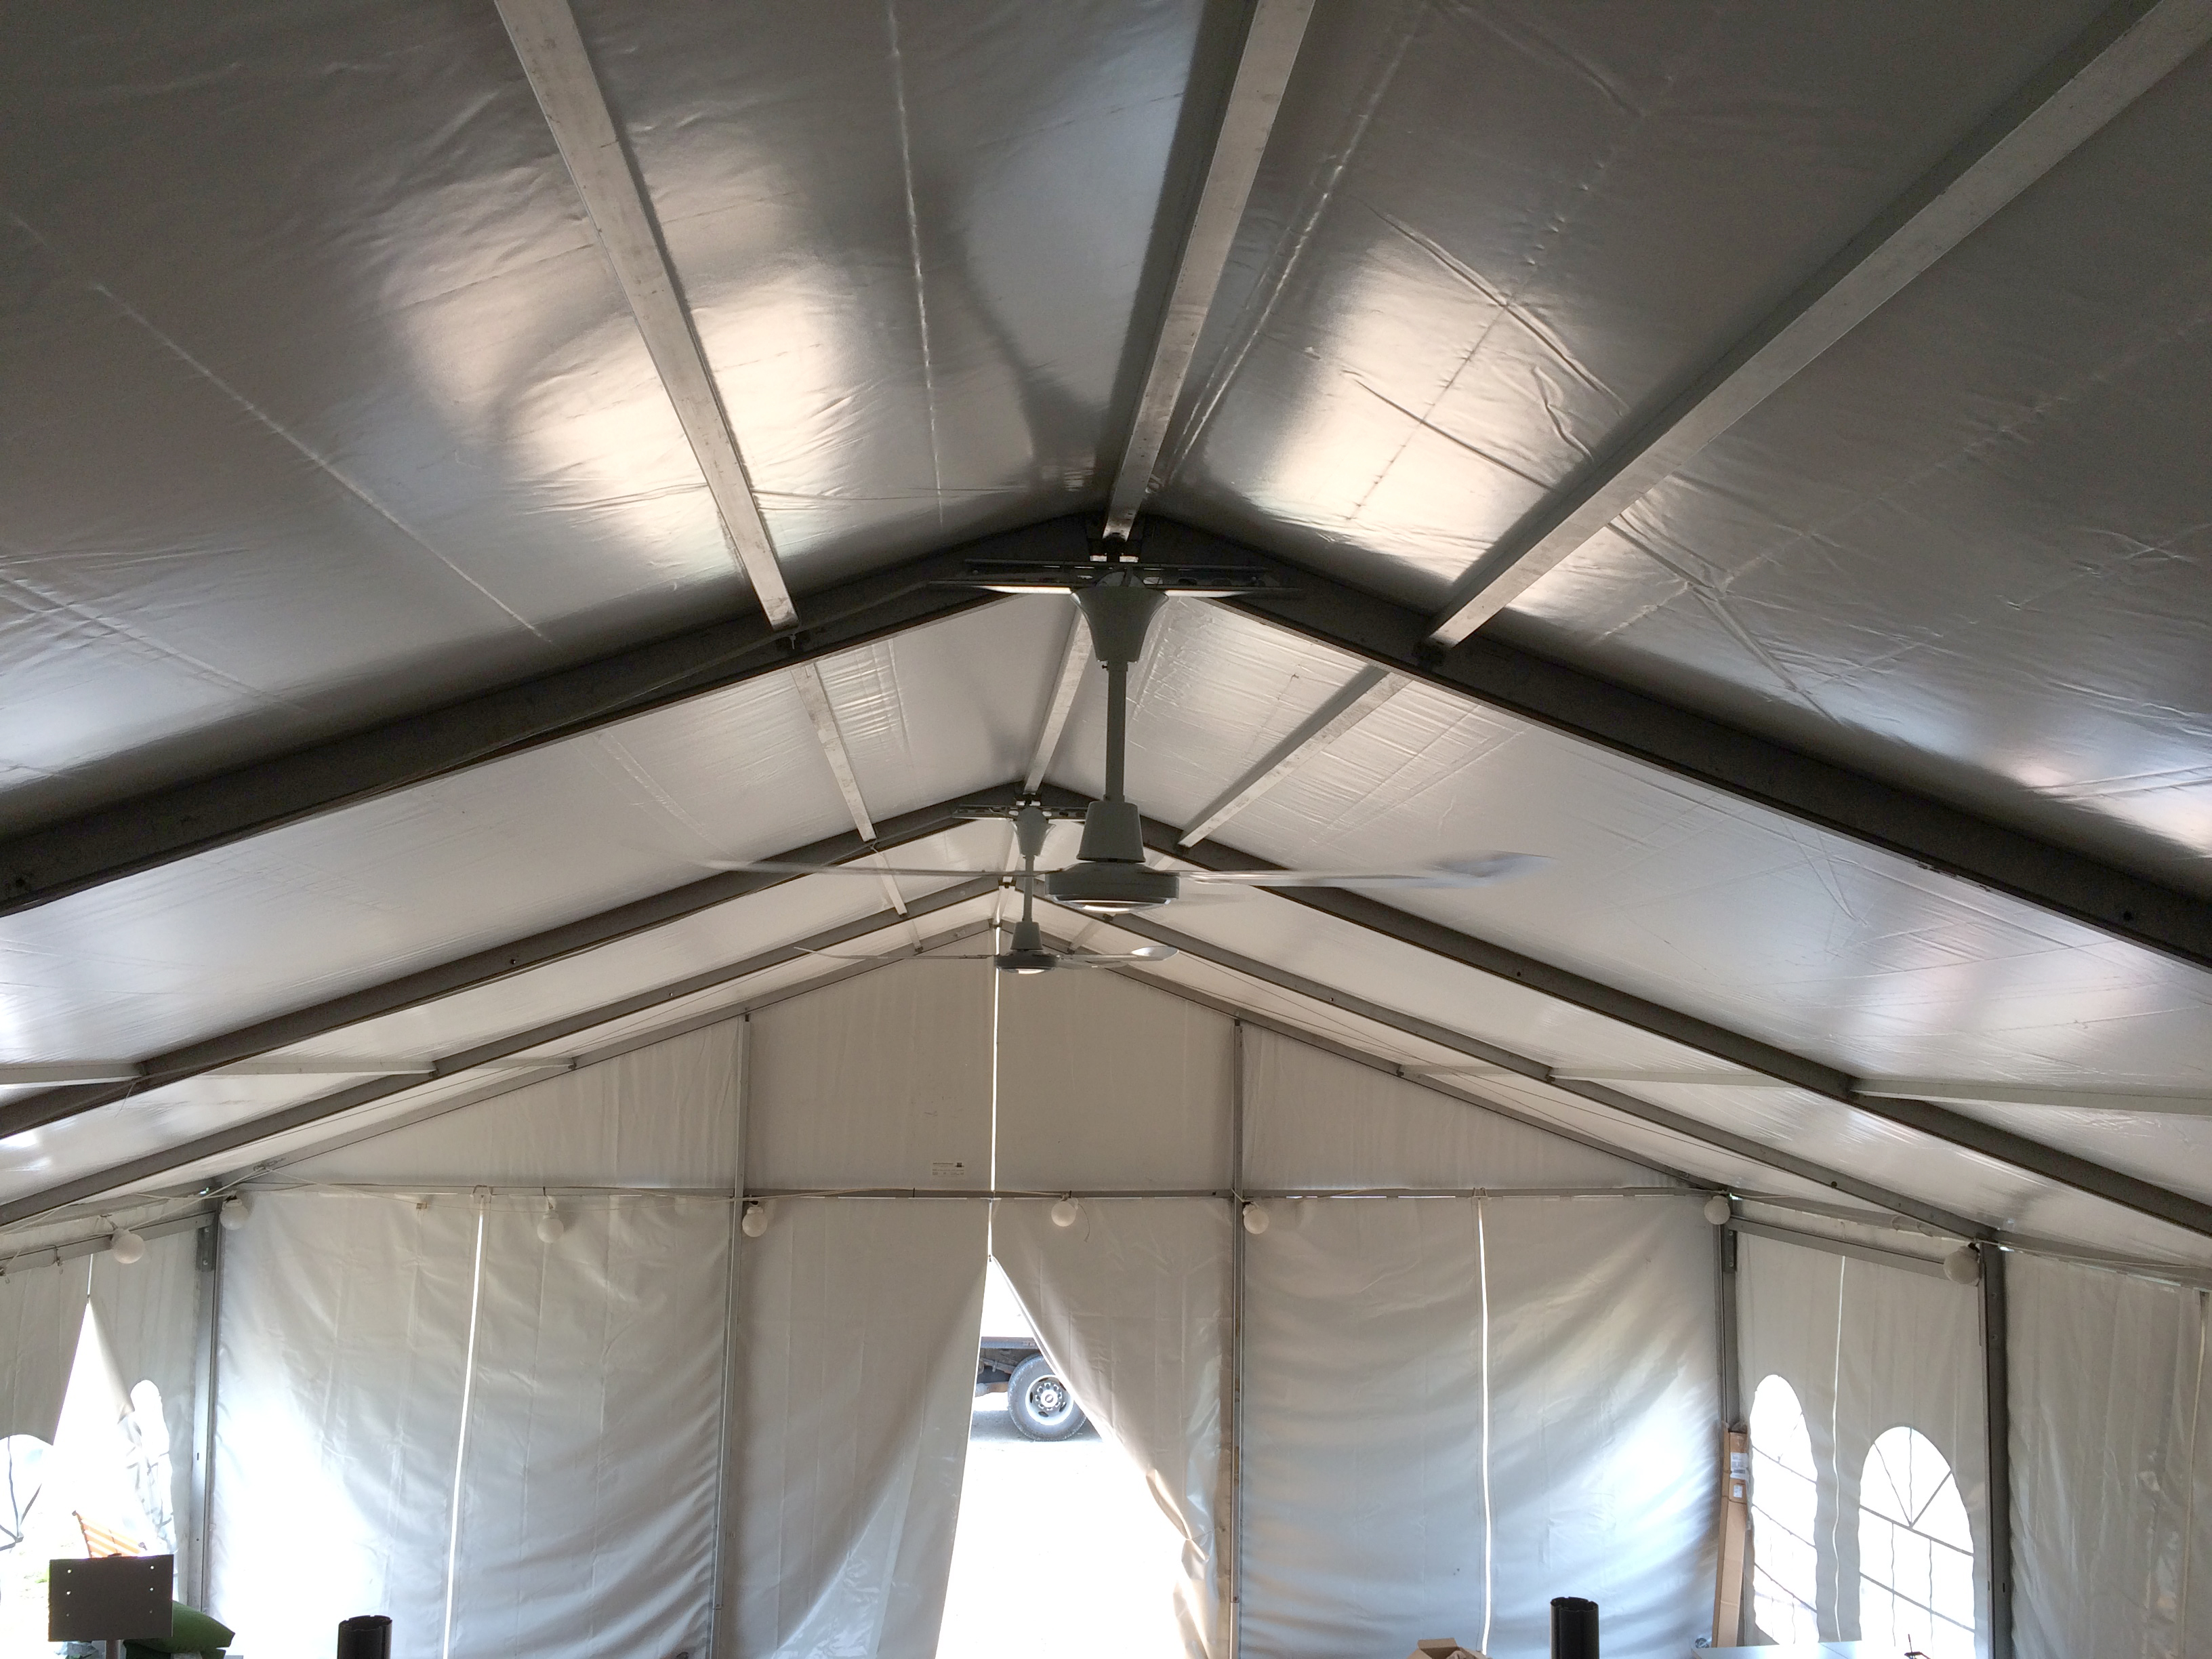 Ceiling fan under tentevent structure rental multiple ceiling fans installed on losberger clearspan event tent at the roof peak mozeypictures